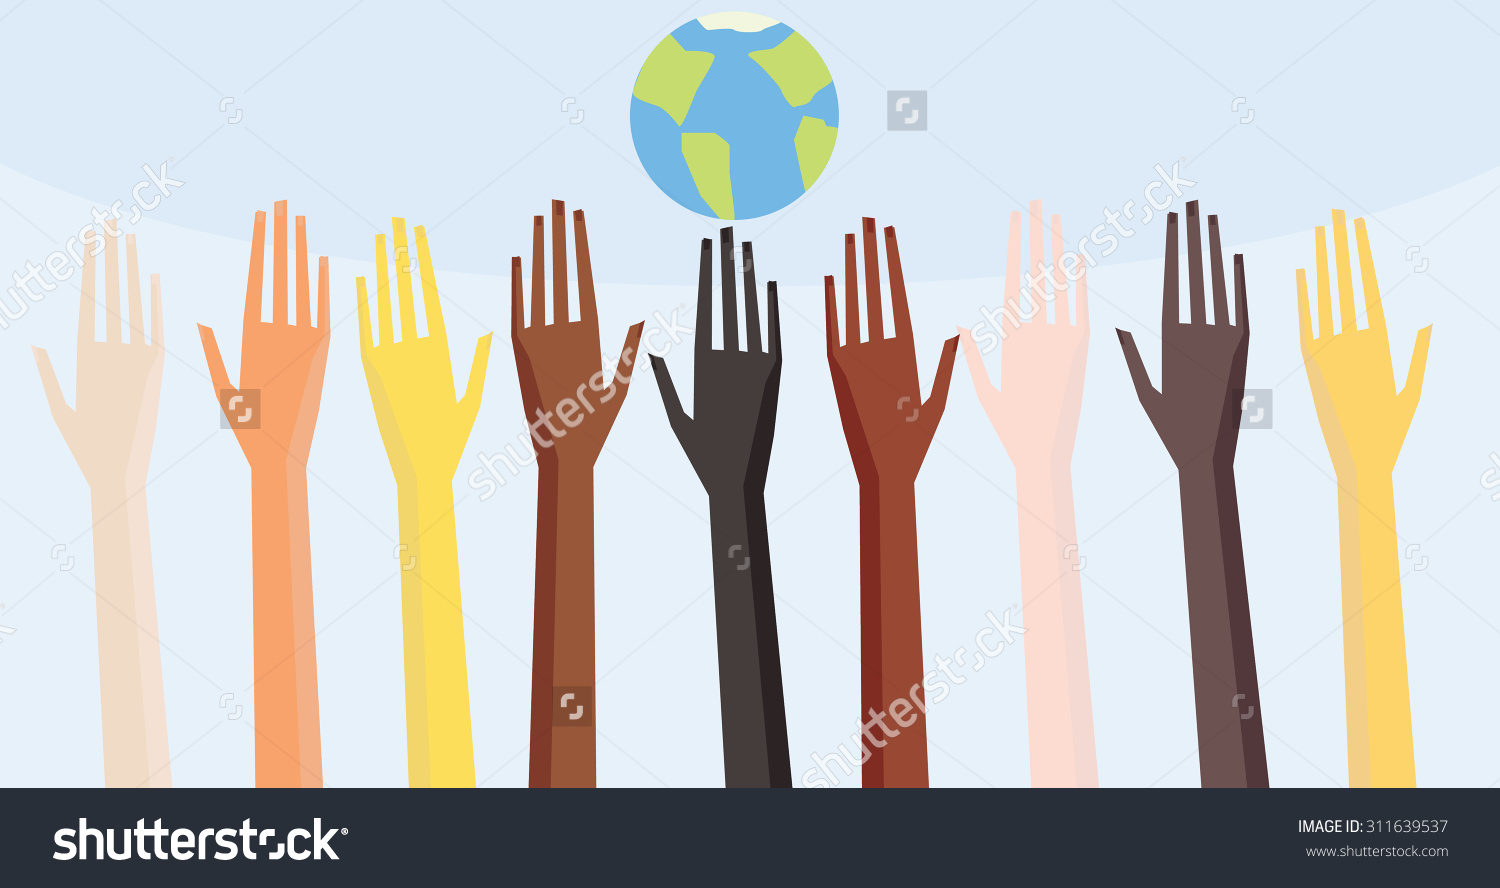 Illustration Peoples Hands Different Skin Color Stock Vector.